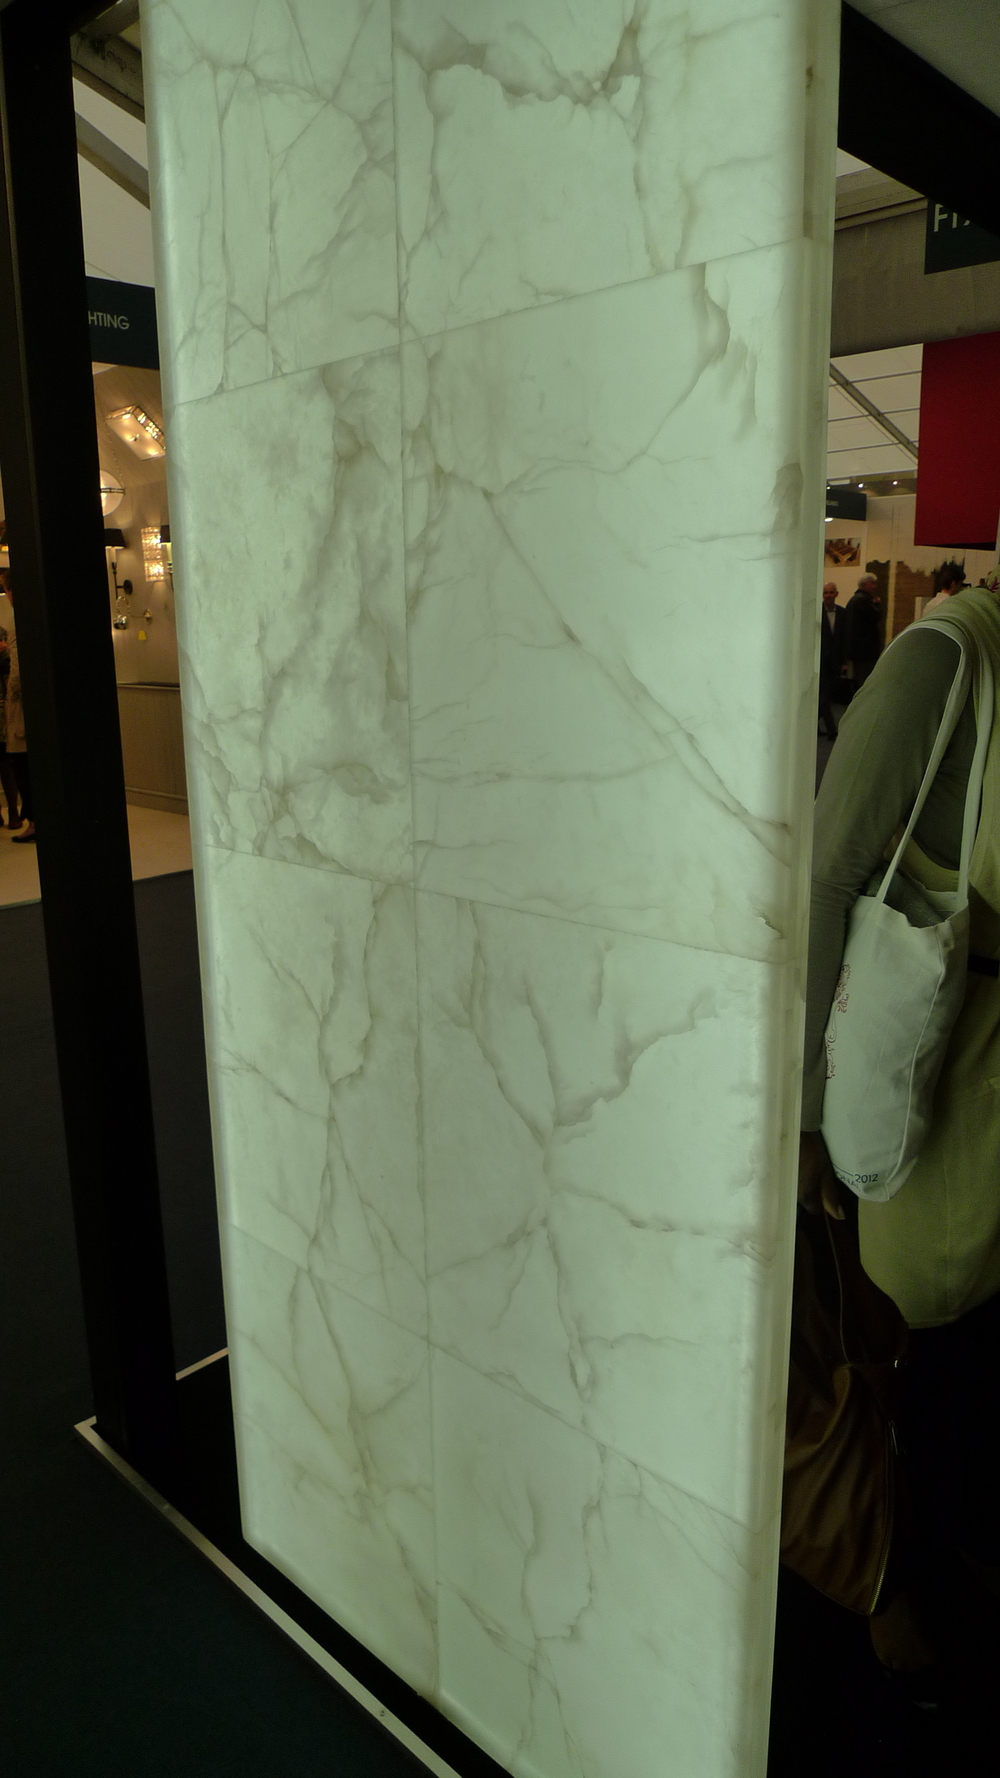 Internally edge lit stone panel by Lamellux